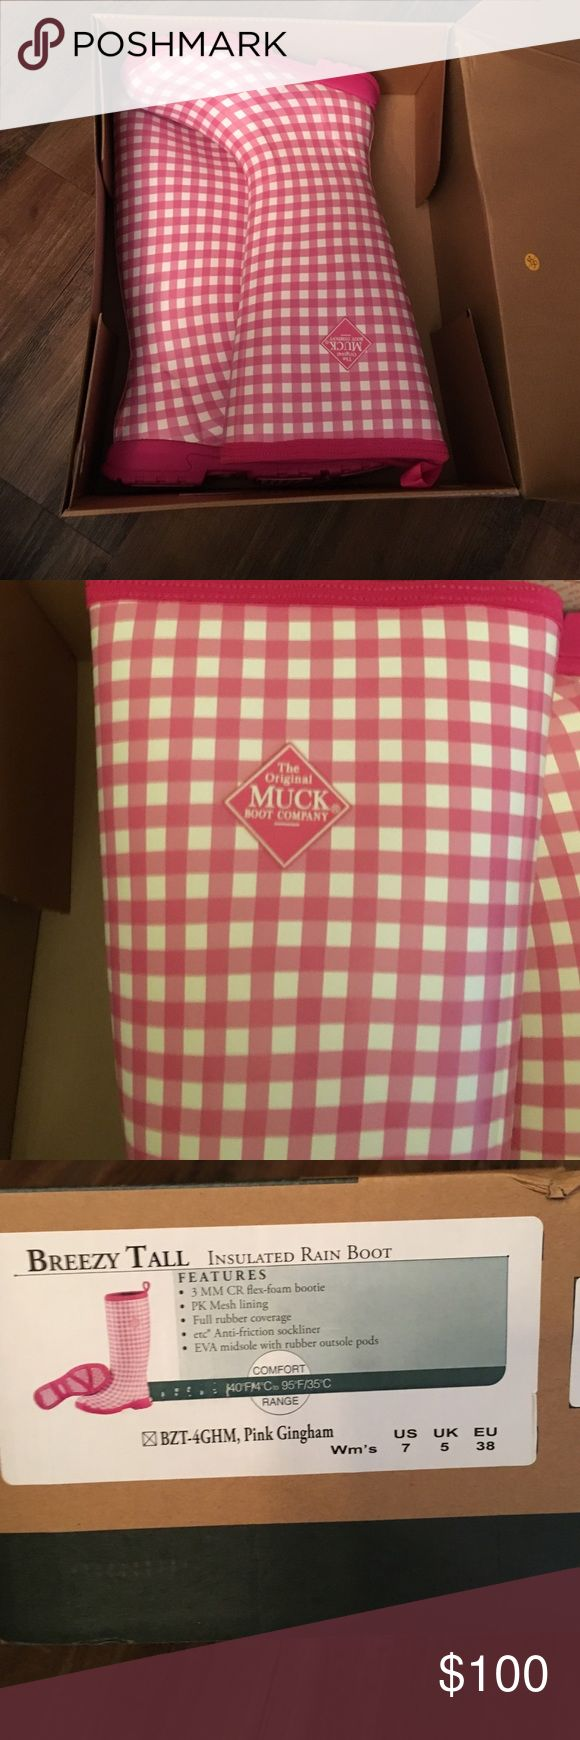 Muck women's rain boot breezy tall New in box Pink gingham. New in box. Retail $155 muck Shoes Winter & Rain Boots